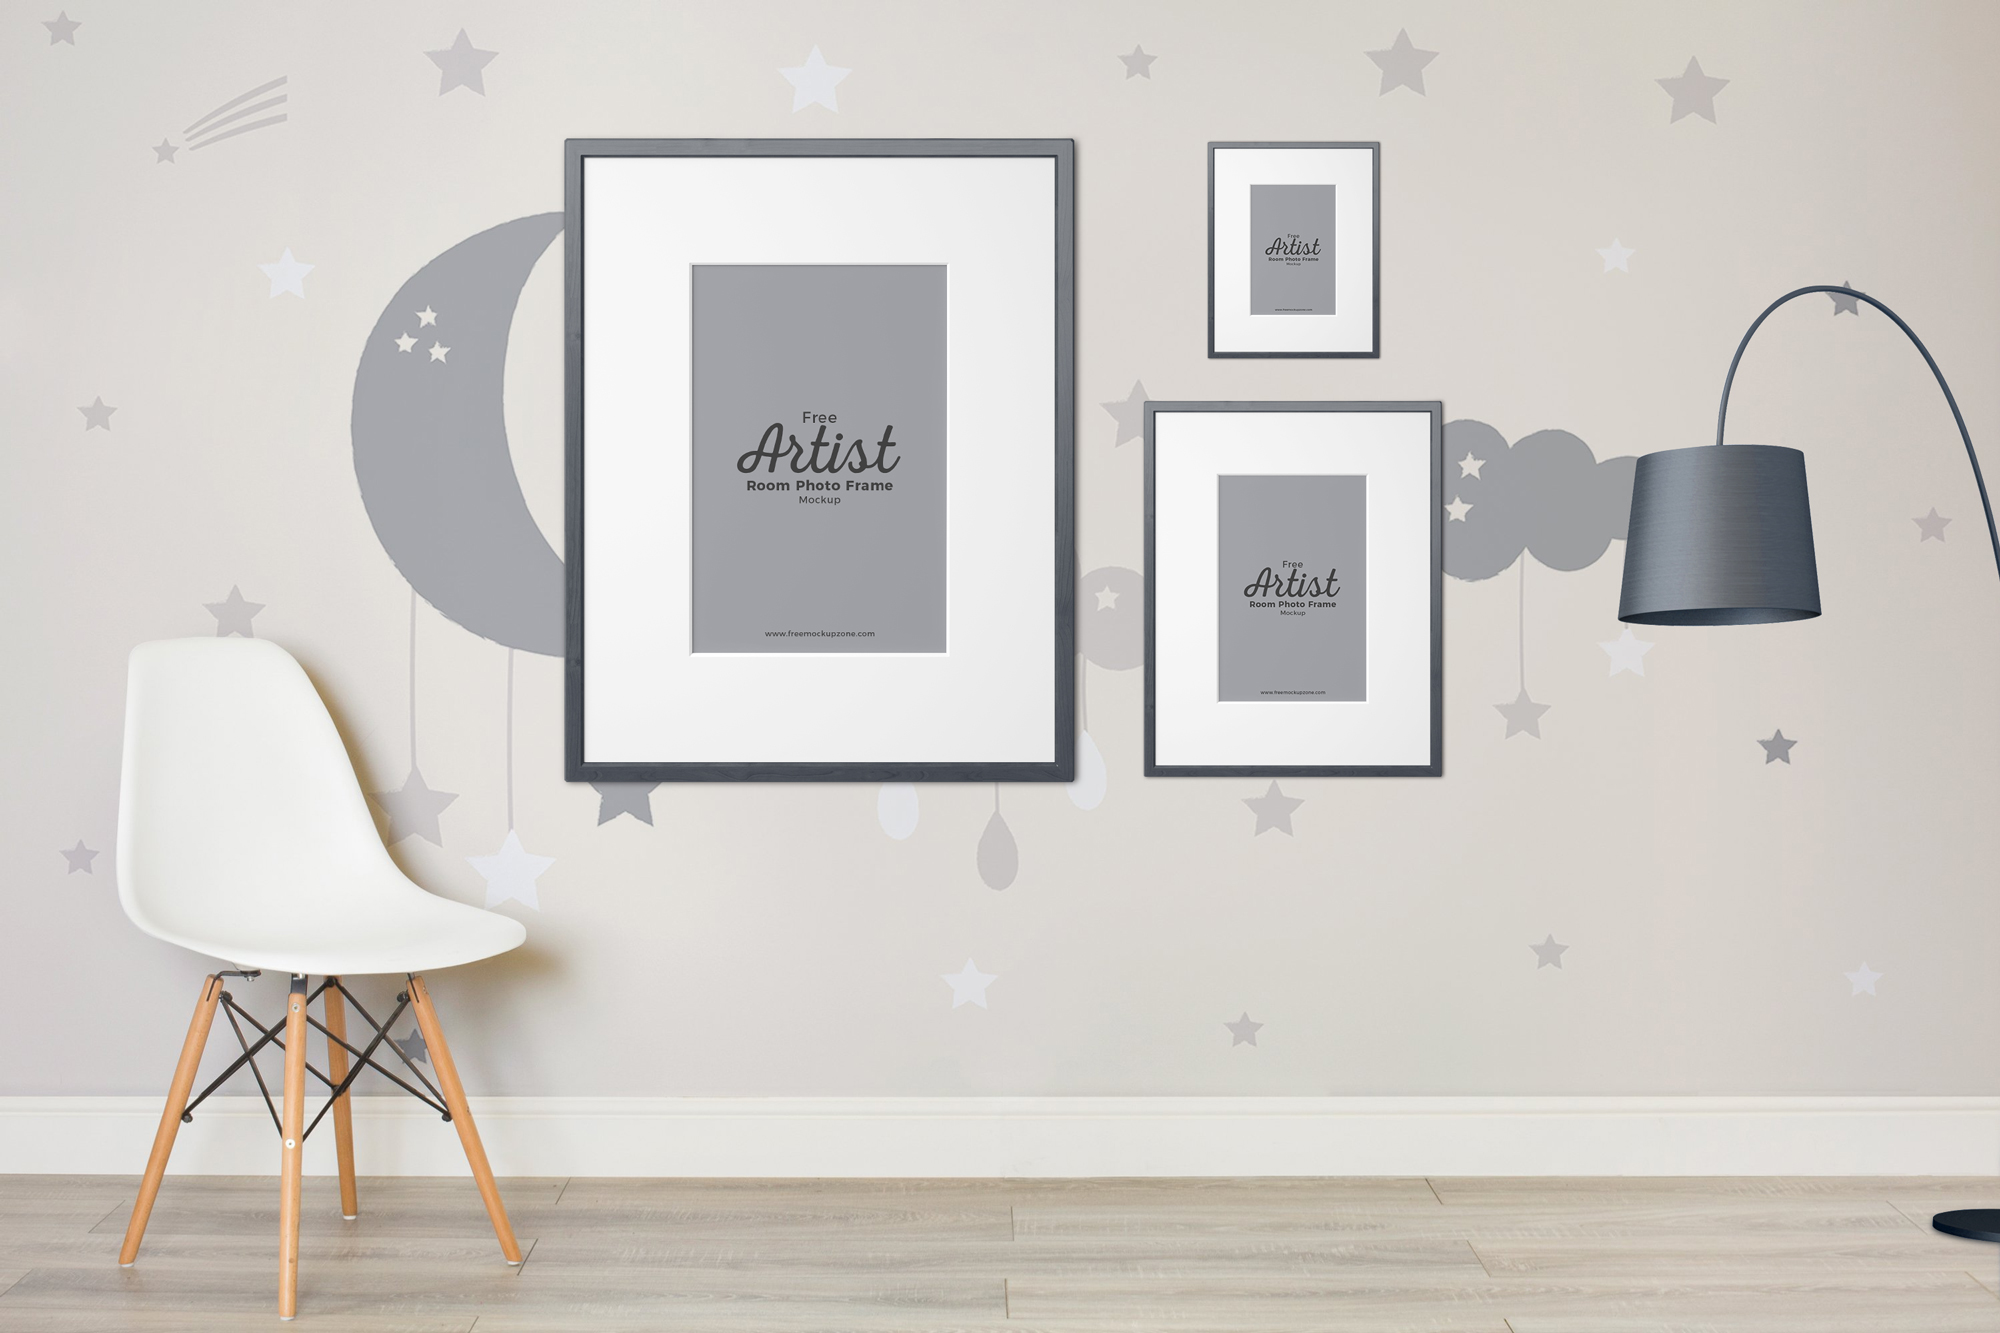 Free Artist Room Frame Mockup To Showcase Your Artworks